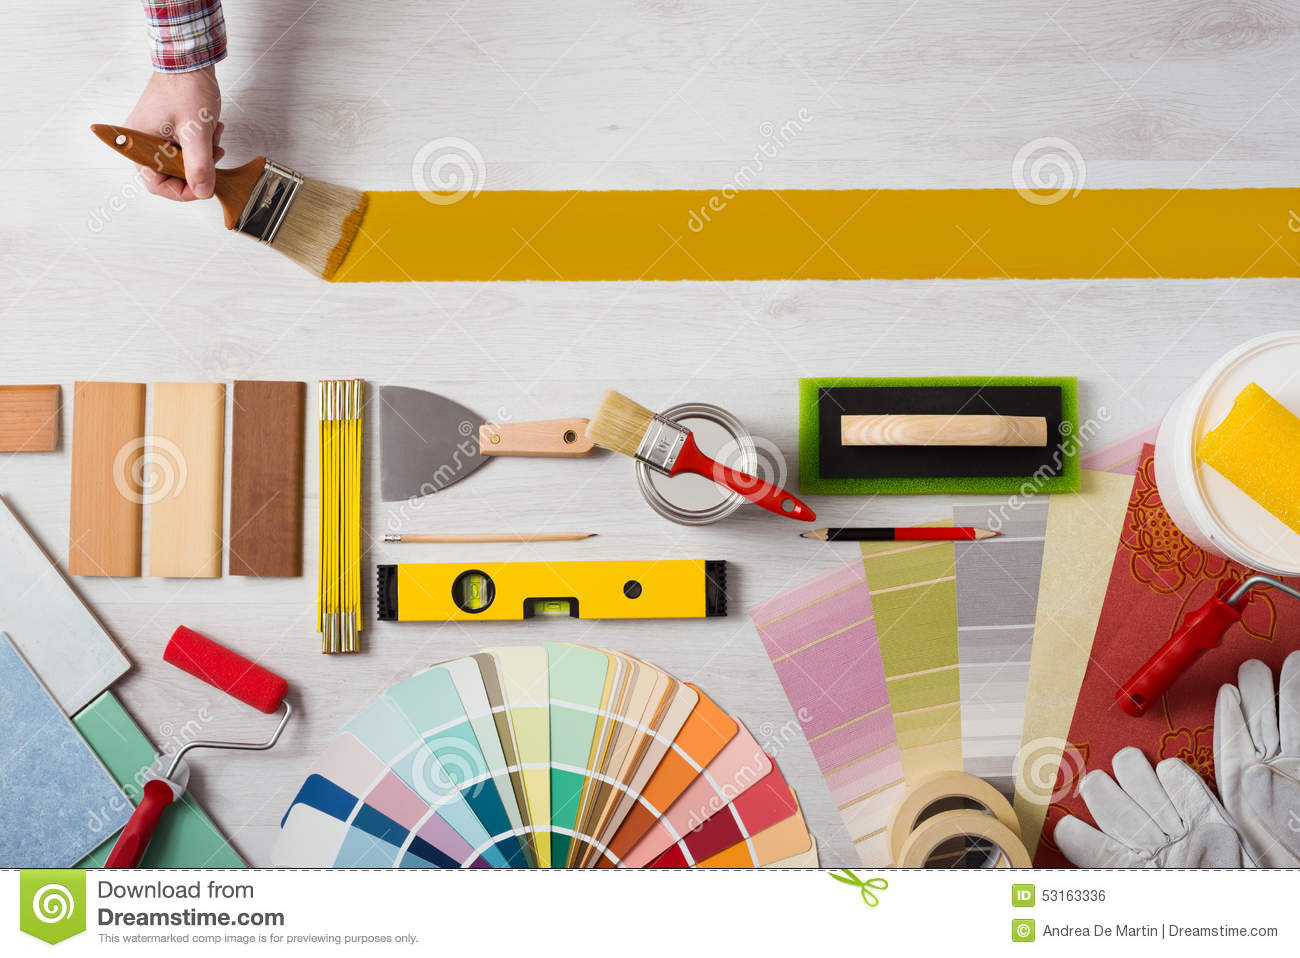 Painter And Decorator Prices >> Painting And Decorating DIY Banner Stock Photo - Image: 53163336